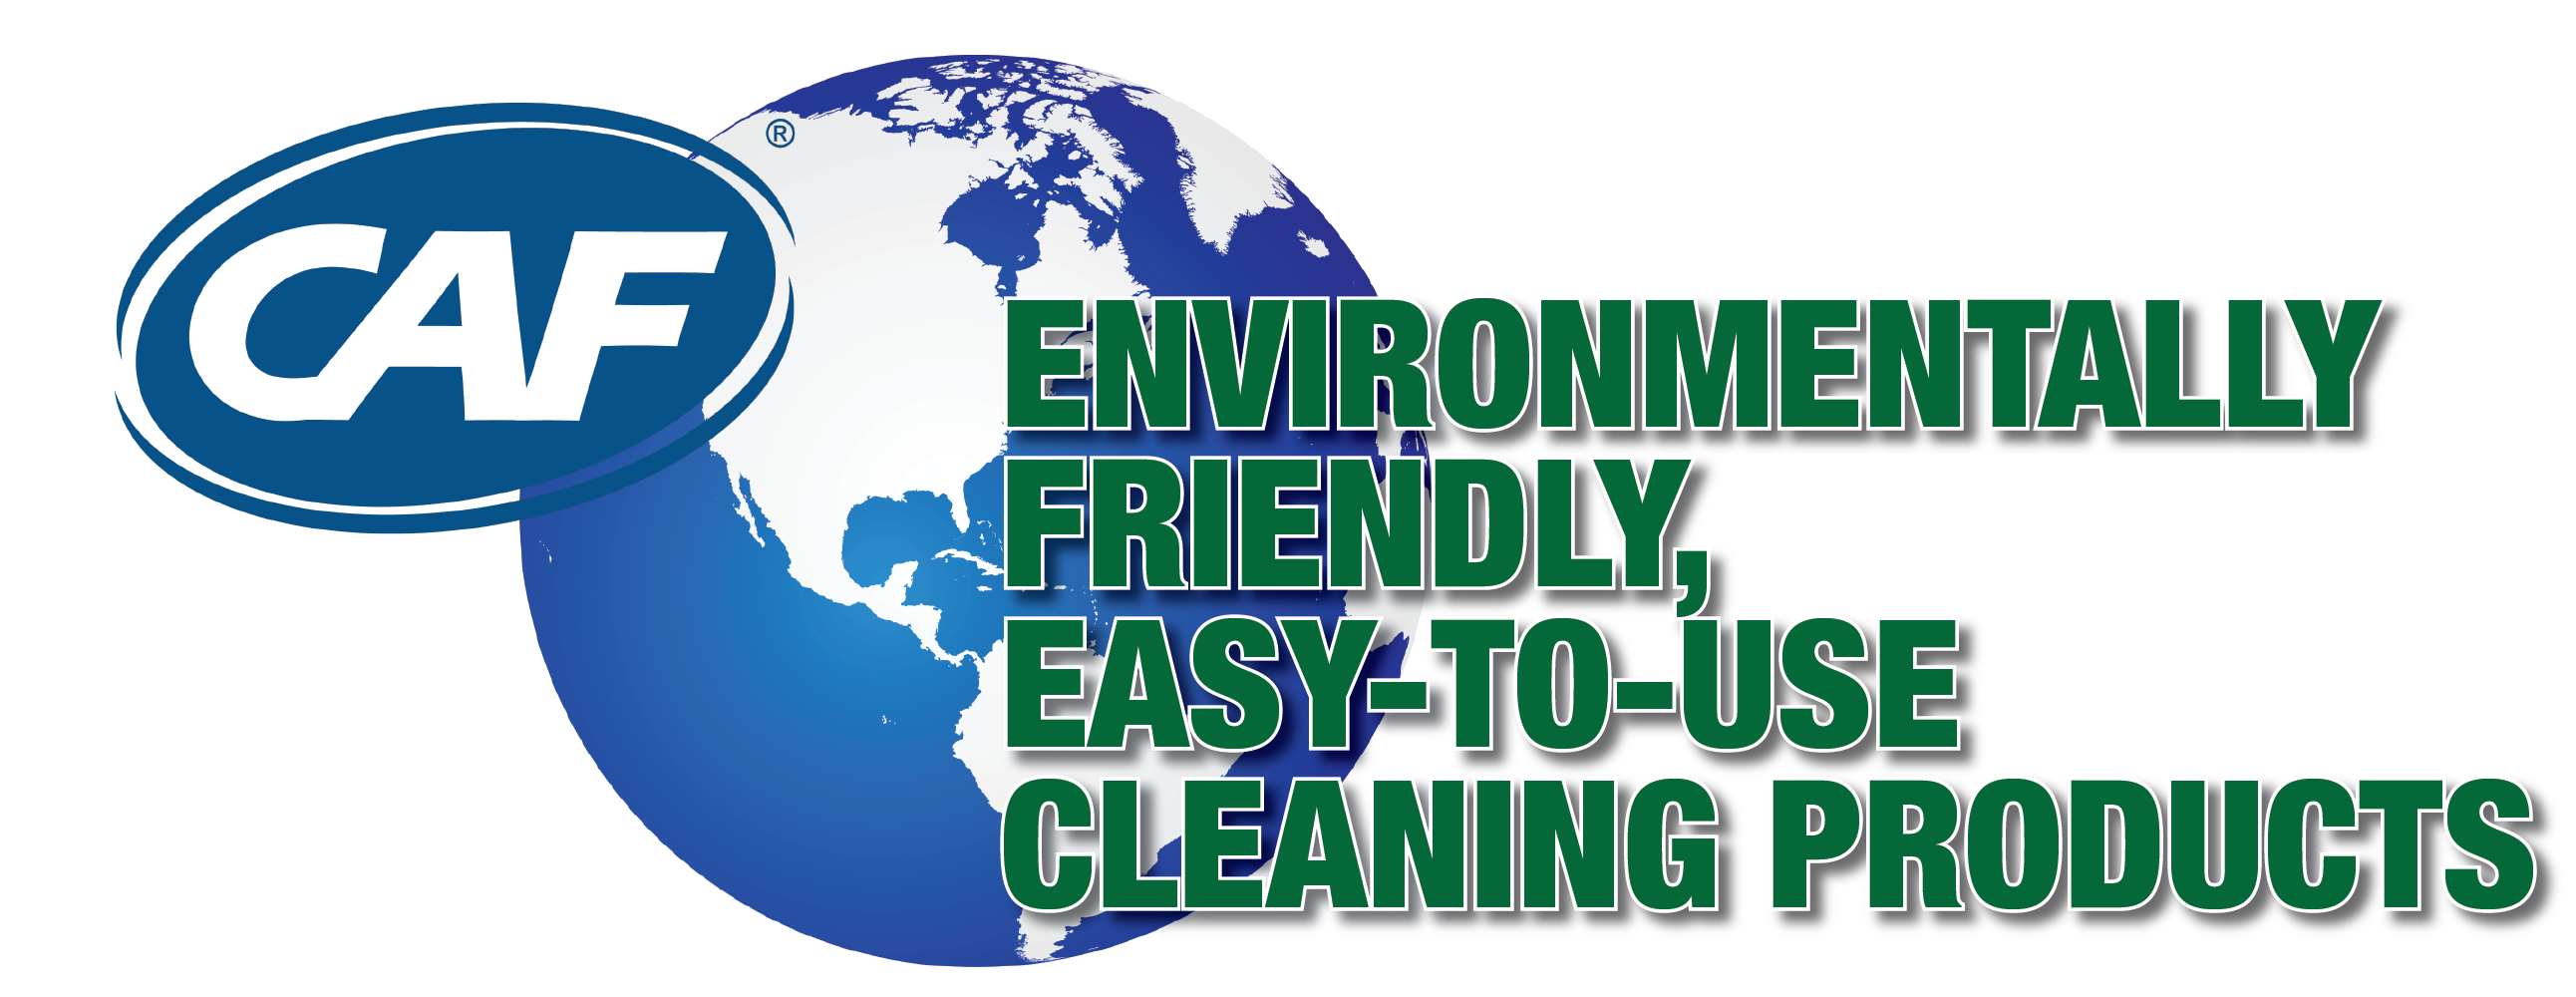 Why use CAF cleaning products?